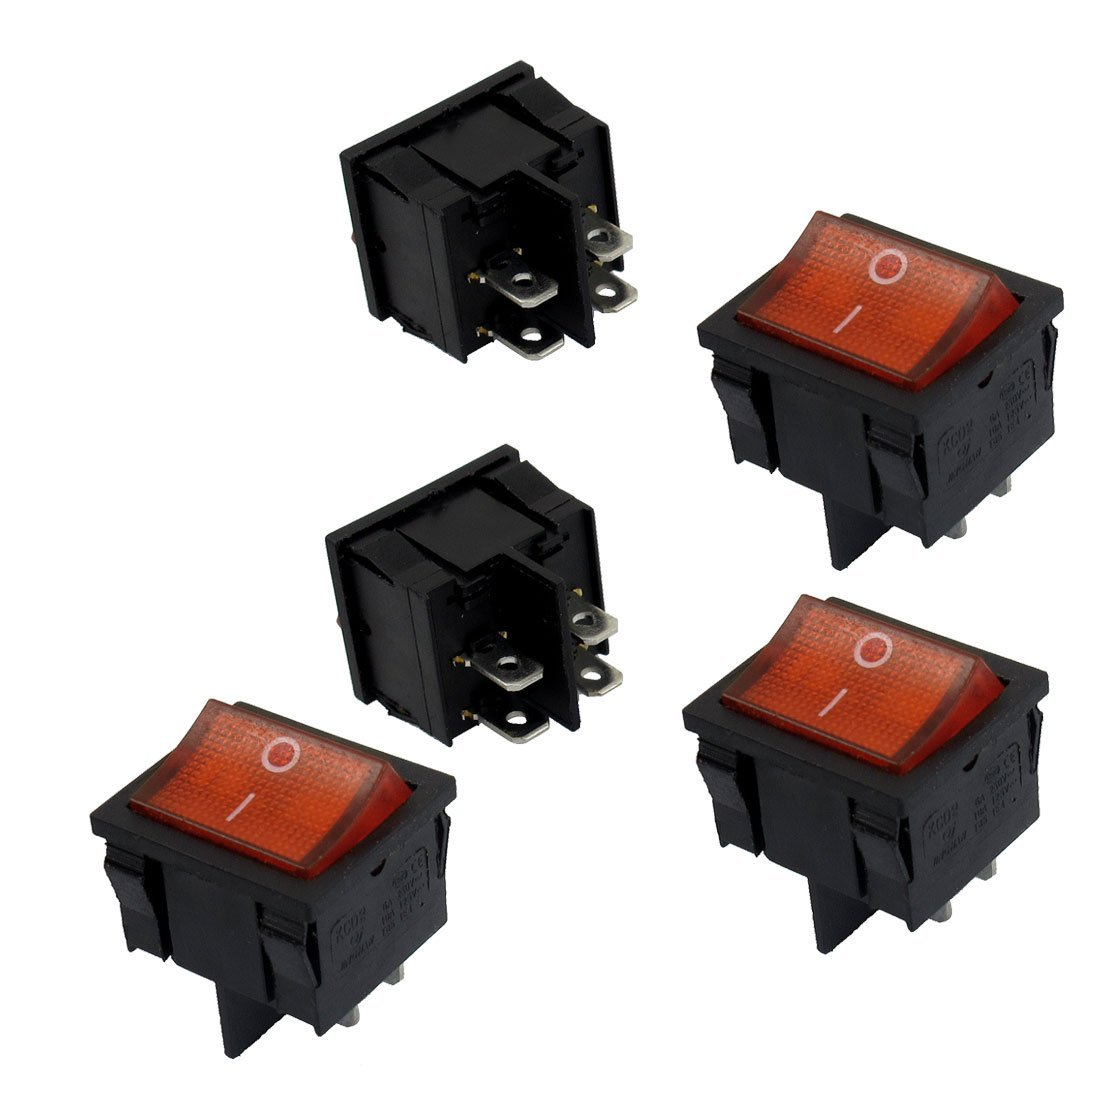 uxcell 5 Pcs 4 Pin DPST Red Neon Light On/Off Rocker Switch AC 6A/250V 10A/125V